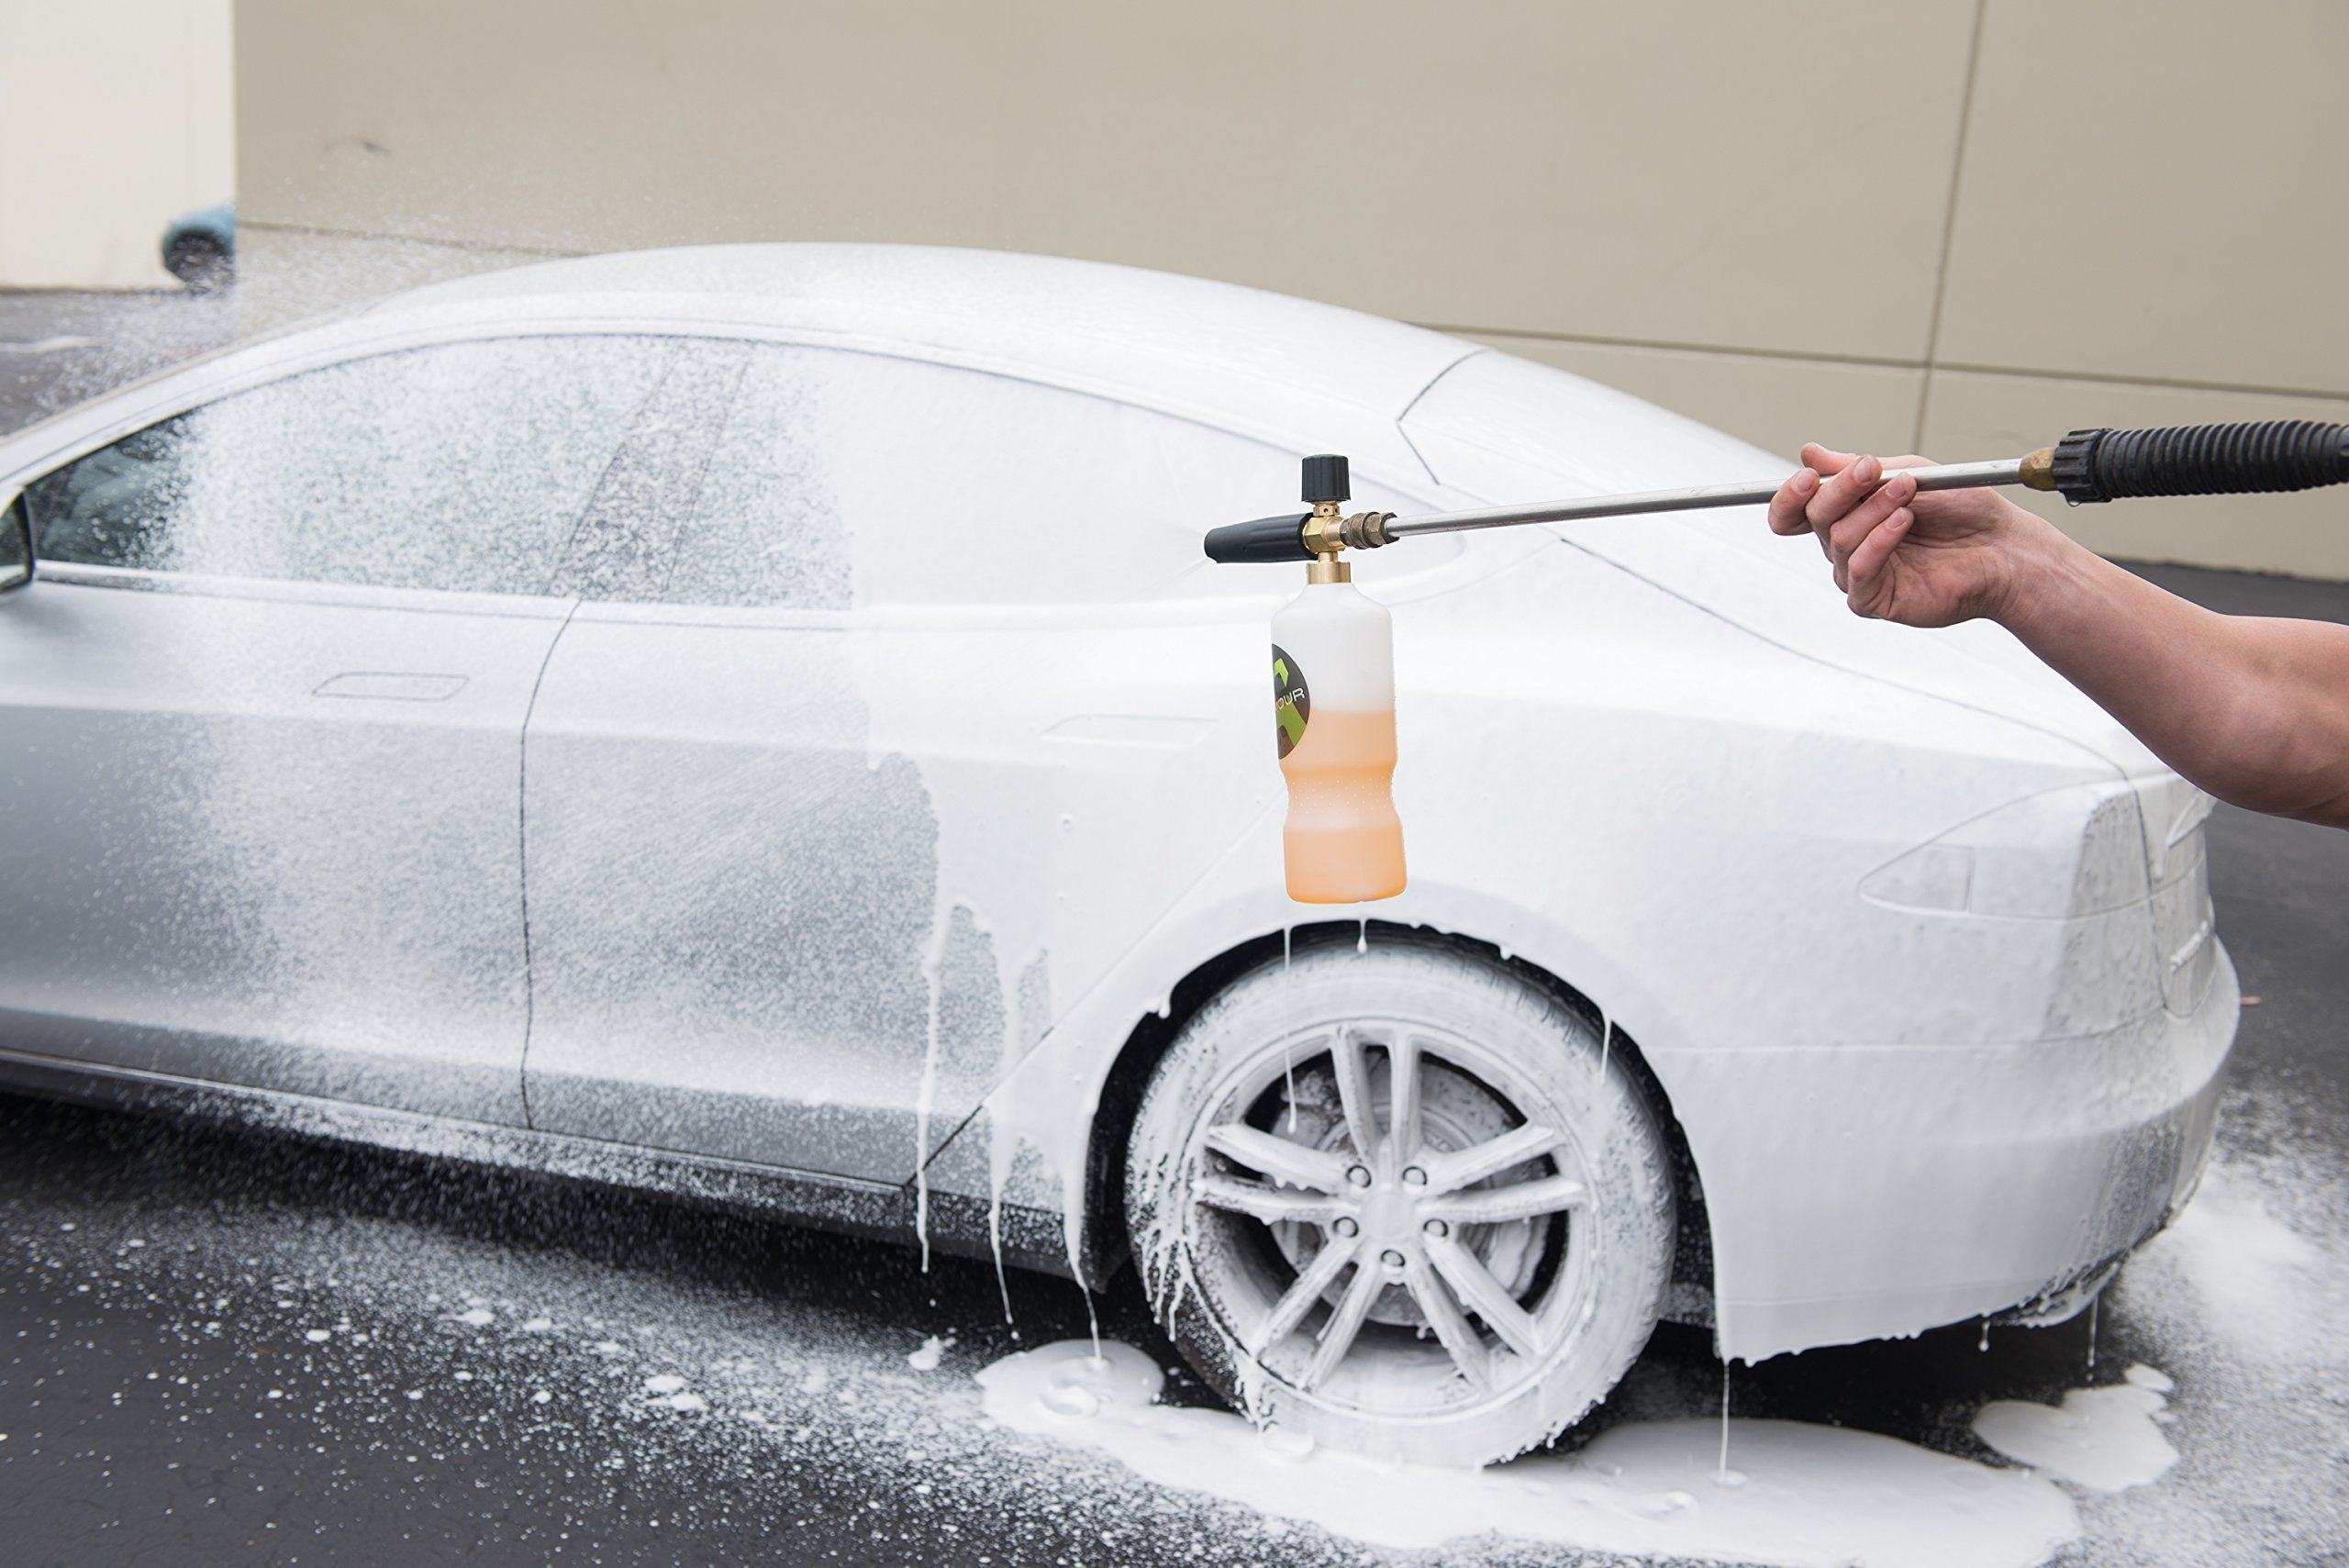 Armour car care new product trgr pro foam sprayer with 1 gallon papaya foam car wash you can get more details by clicking on the image